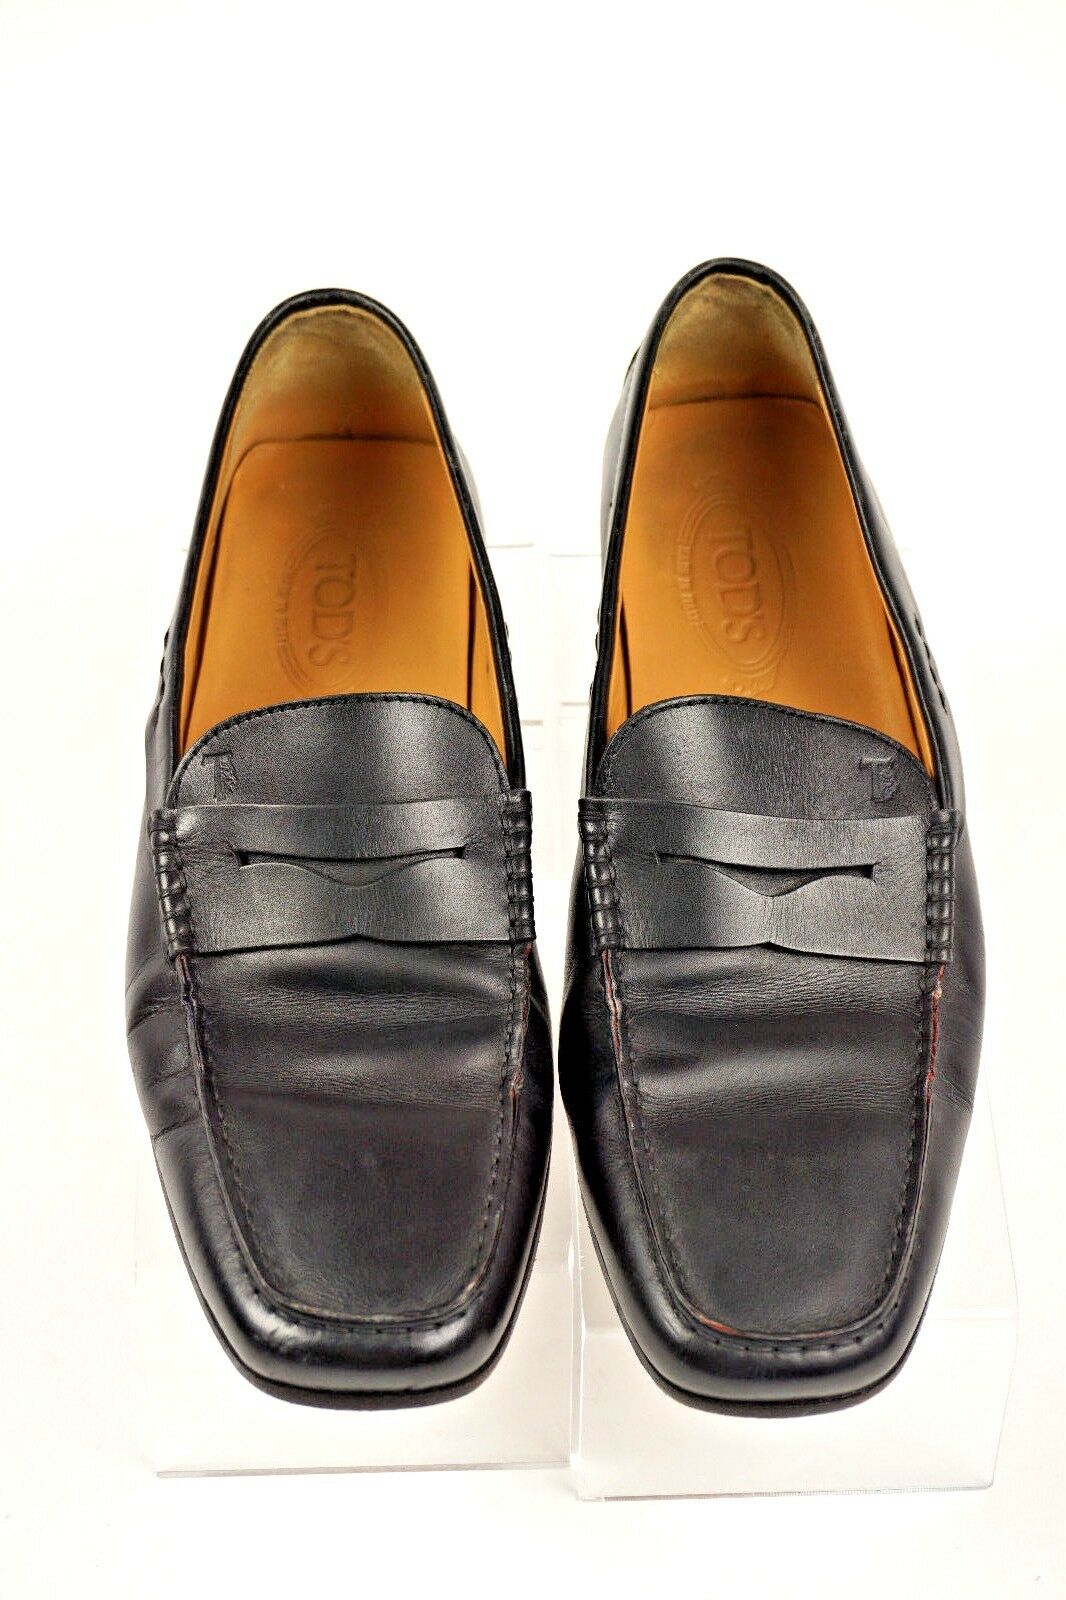 52c071ddf9b TOD S TOD S TOD S Mens Penny Loafer Black Leather Slip on 9 Made in Italy  469904